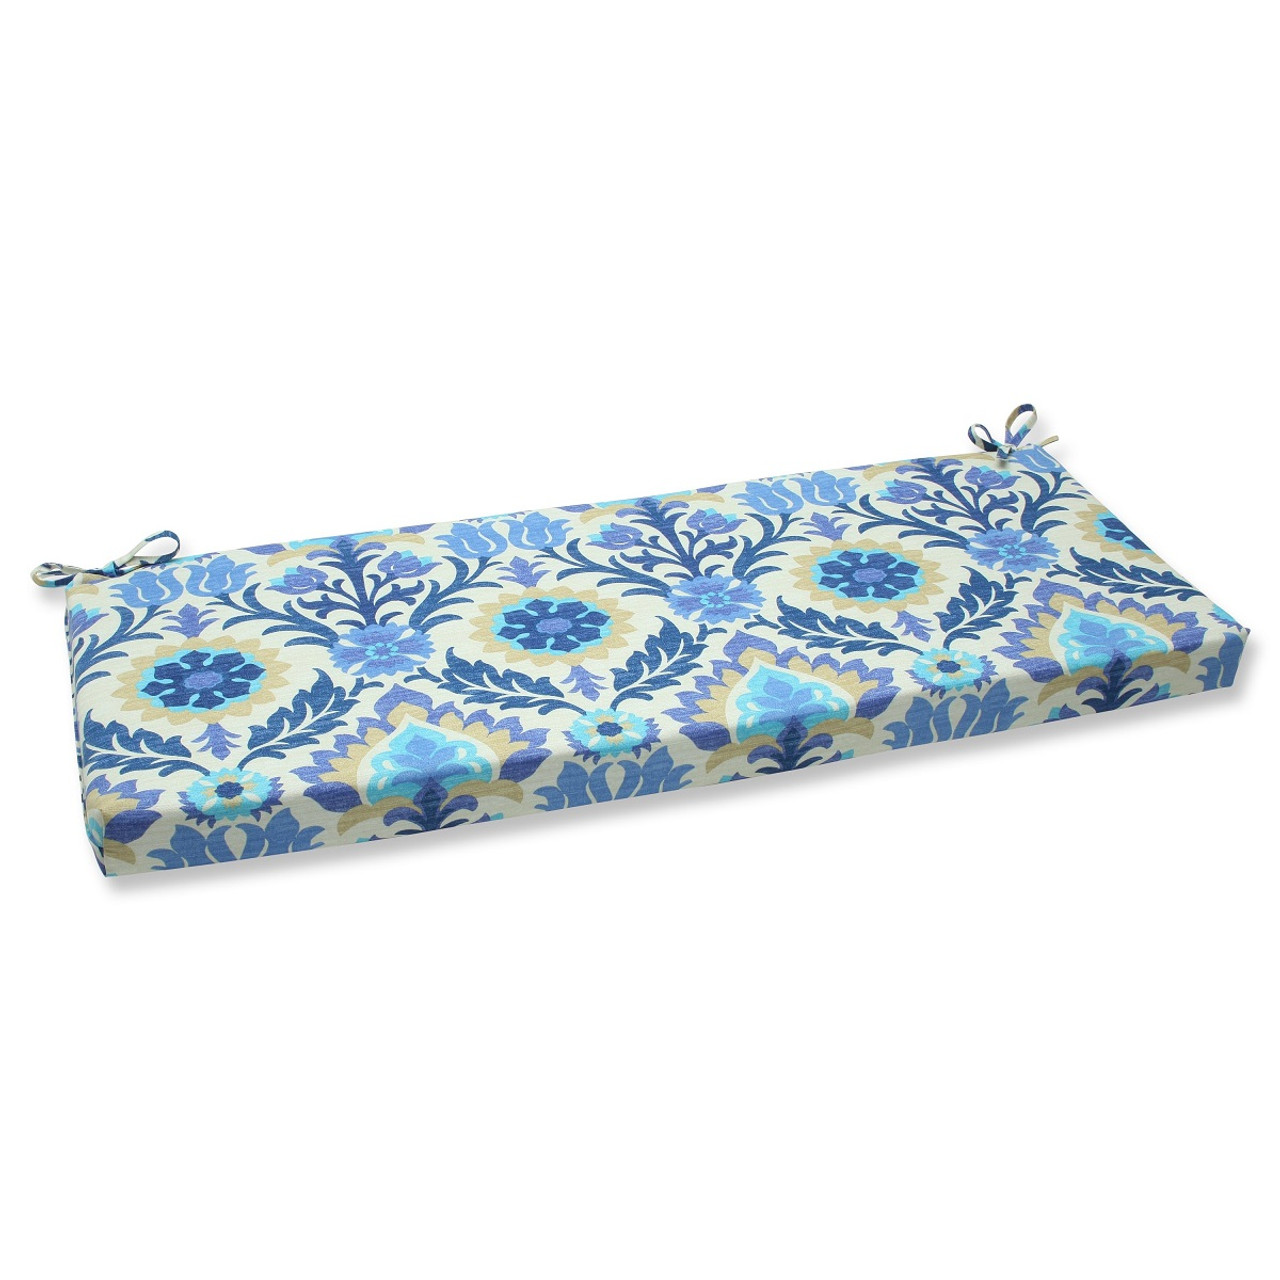 45 Dream Garden Navy Blue Light Taupe And Ivory Damask Outdoor Patio Bench Cushion 31351371